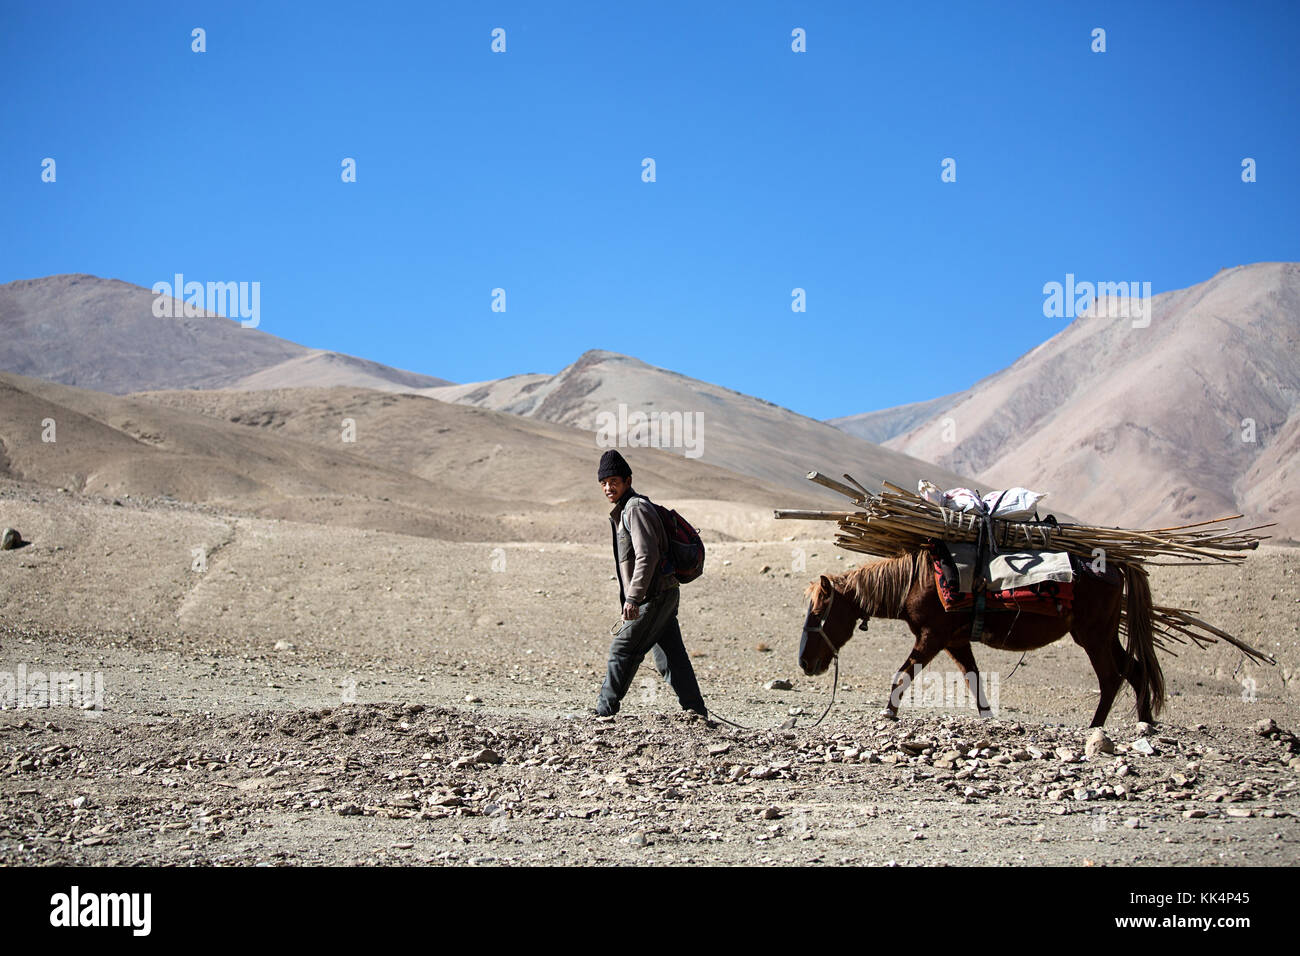 Local man with a mule - traditional way of transport, Ladakh, Jammu and Kashmir, India. - Stock Image